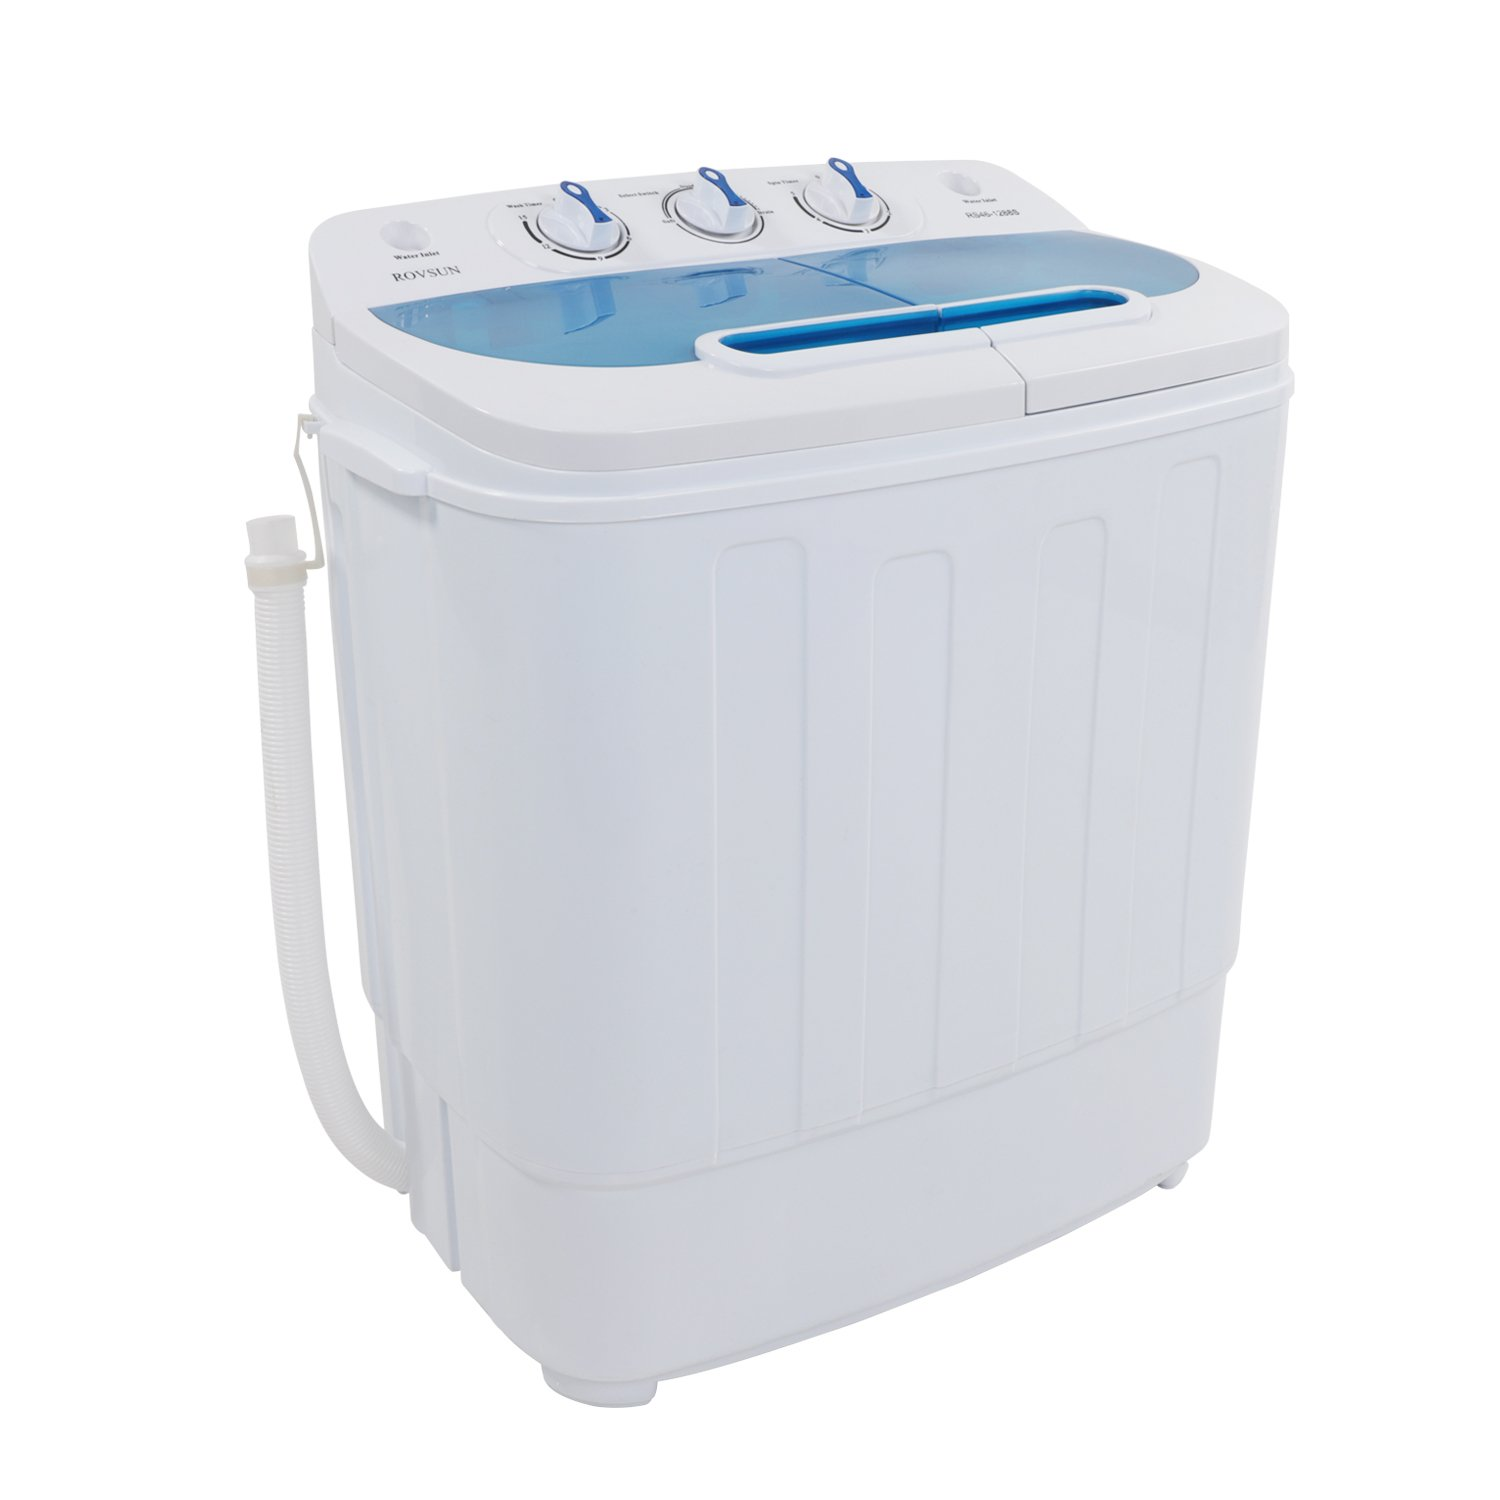 ROVSUN zokop Portable Twin Tub Washing Machine, Electric Compact Mini Washer, 13.4LBS Capacity Energy Saving, Spin Cycle w/Hose, Great for Home RV Camping Dorms Apartments College Rooms